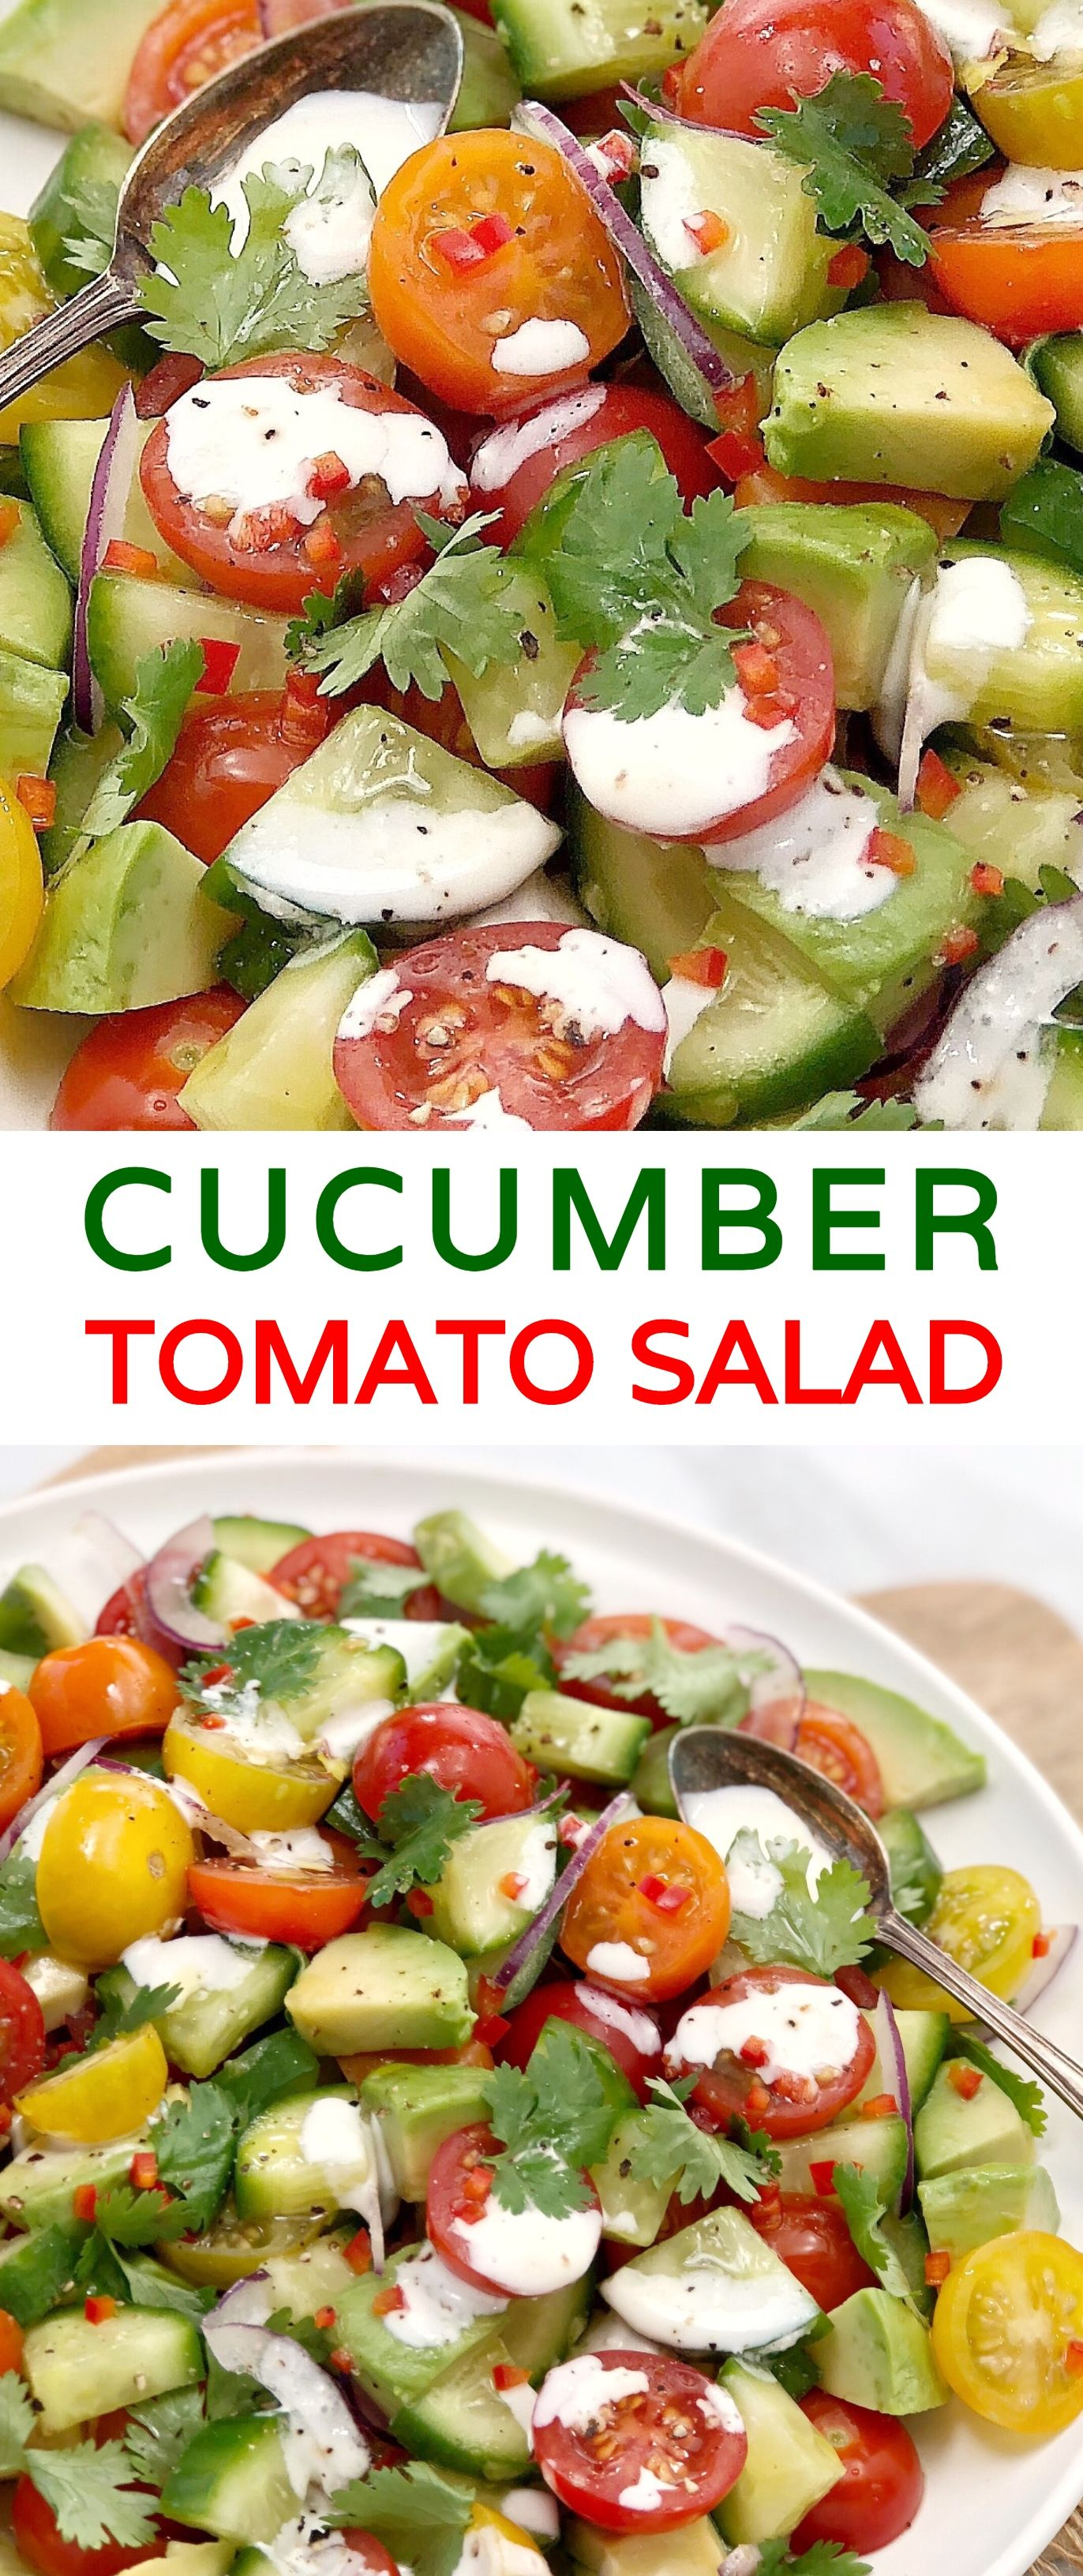 Cucumber Tomato Avocado Salad A Fresh Crunchy Low Carb Side